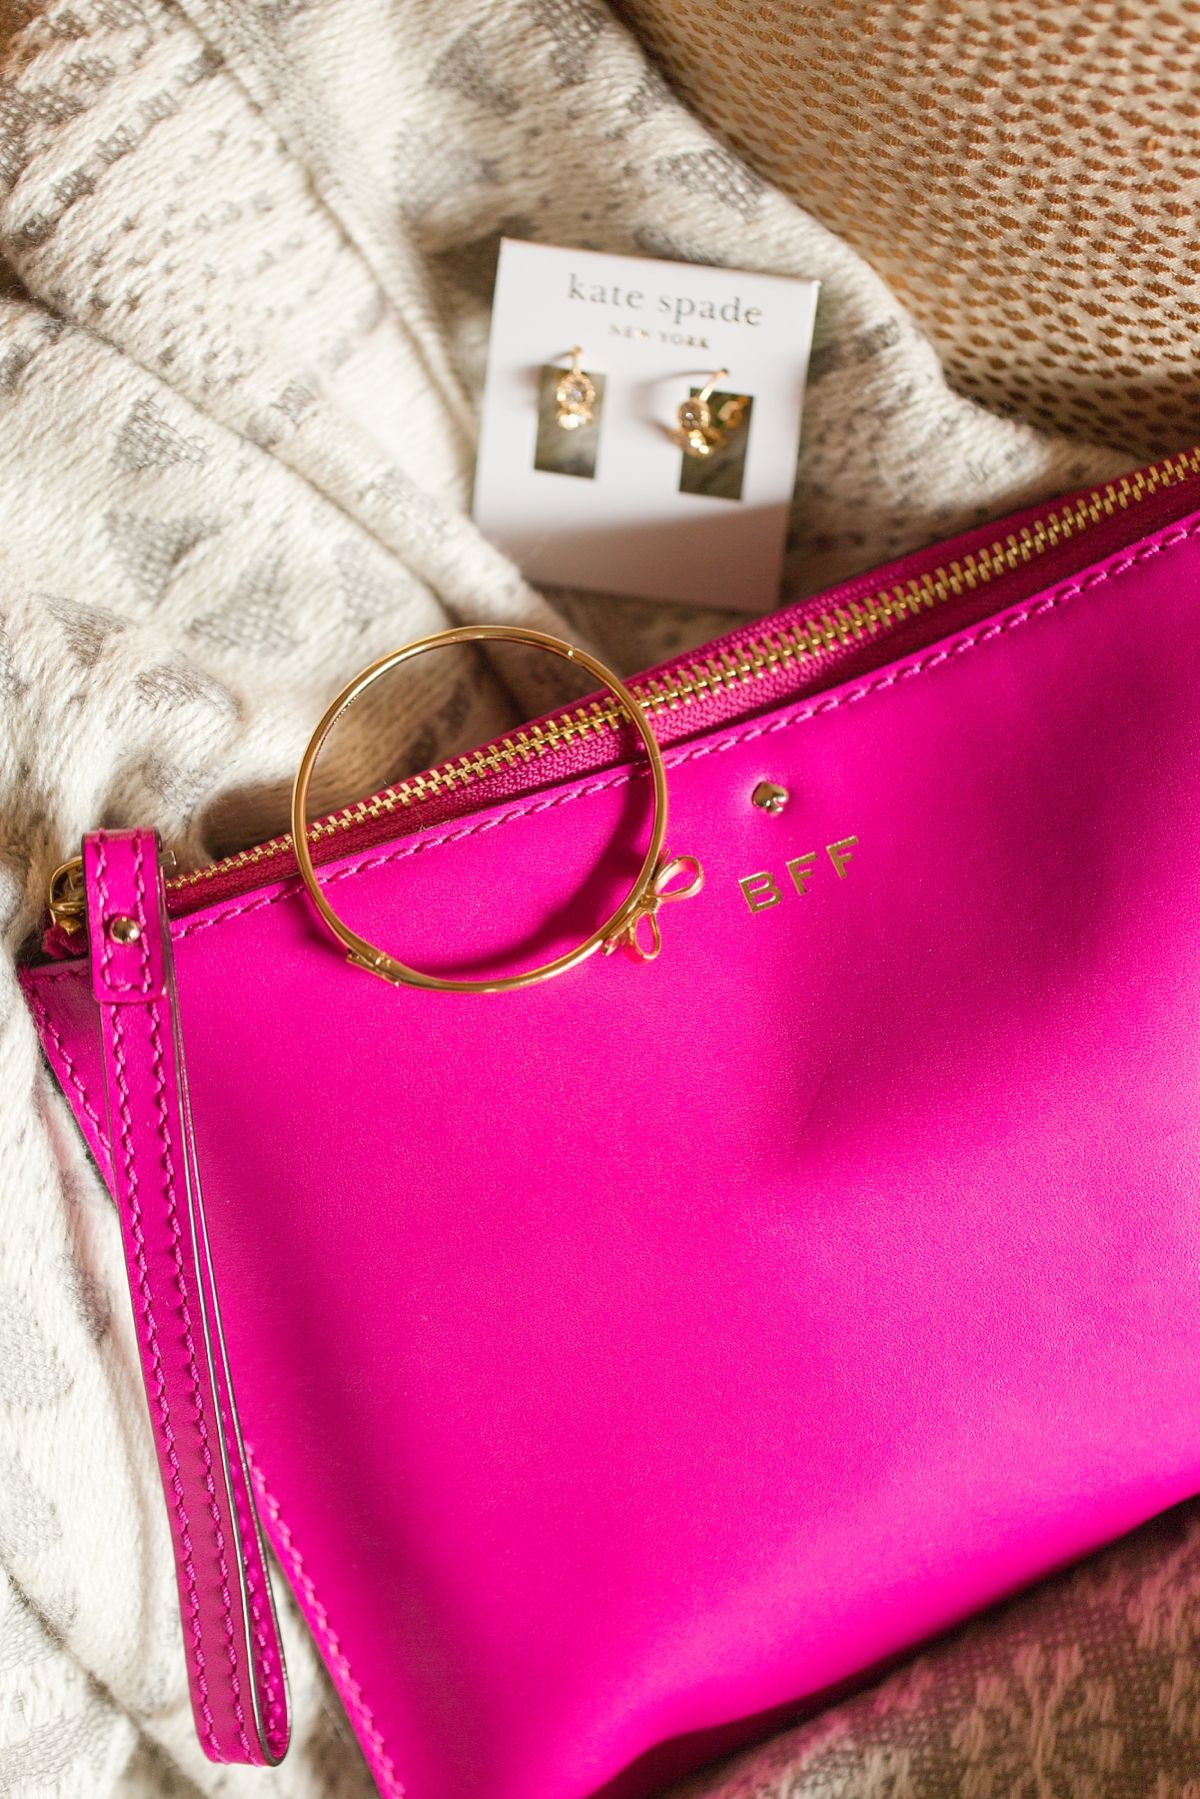 Perfect Kate Spade Bridesmaid Gifts On Wedding Day From Bride